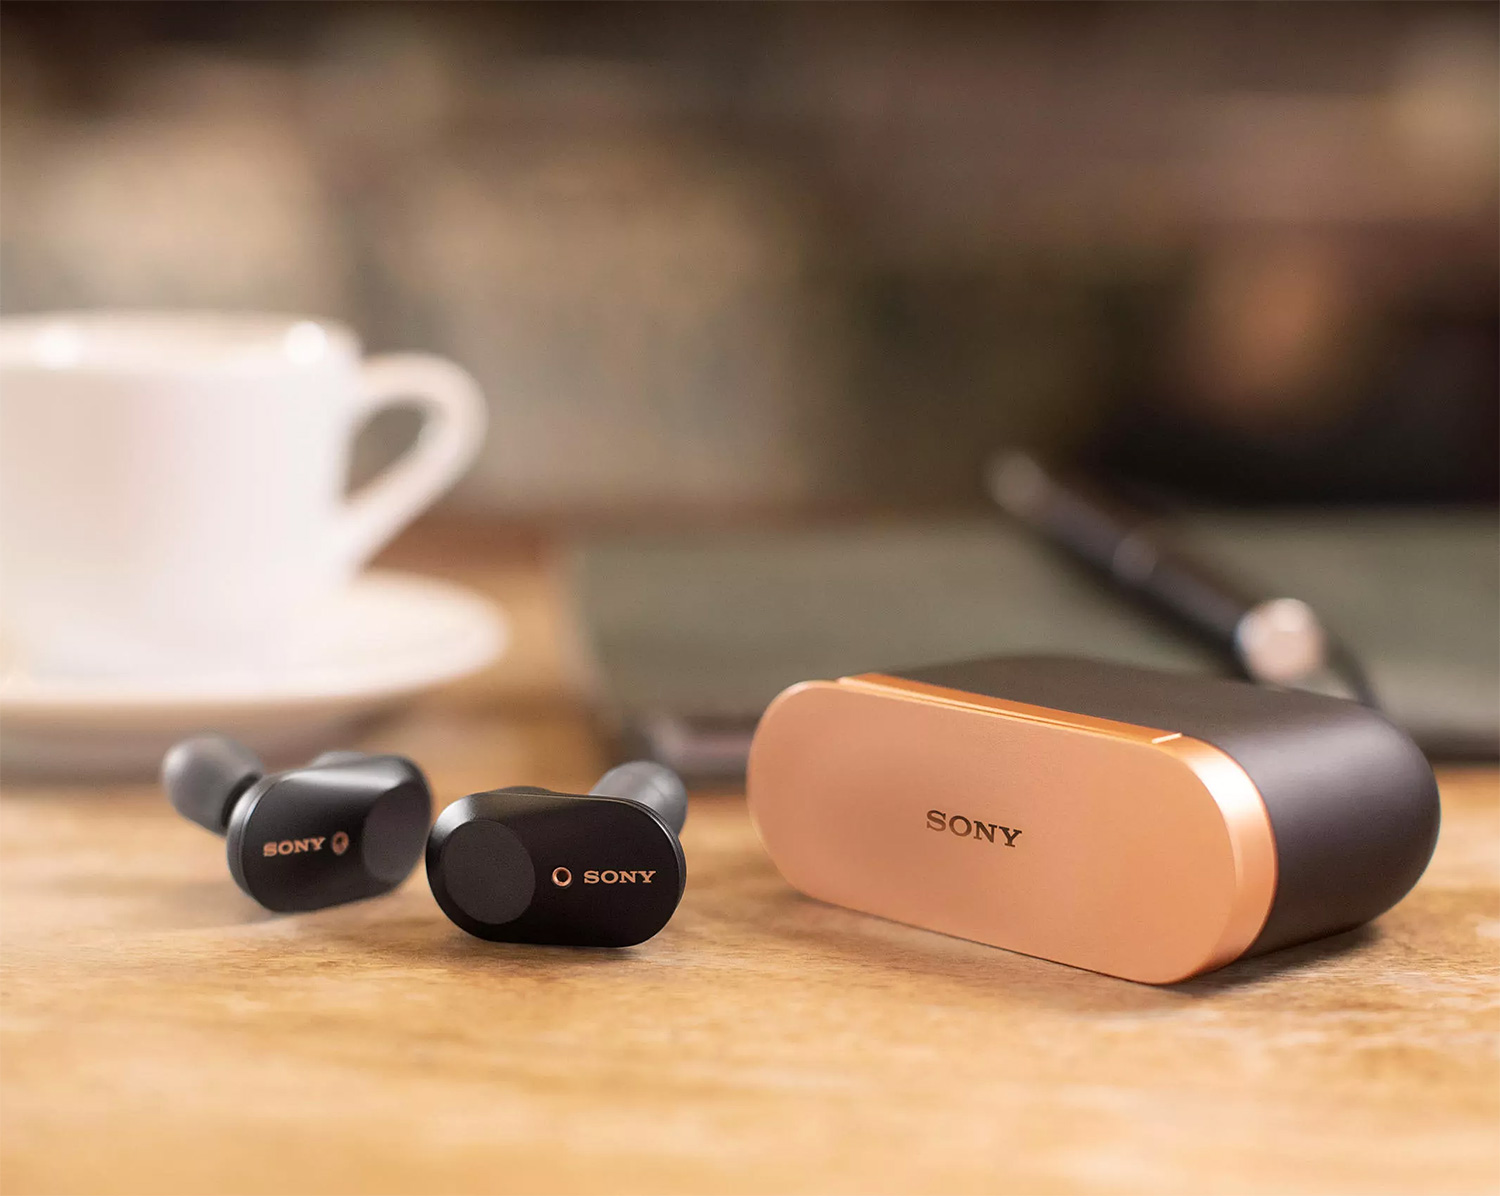 Sony's WF-1000XM3 Earbuds are Way Cooler than Their Name at werd.com